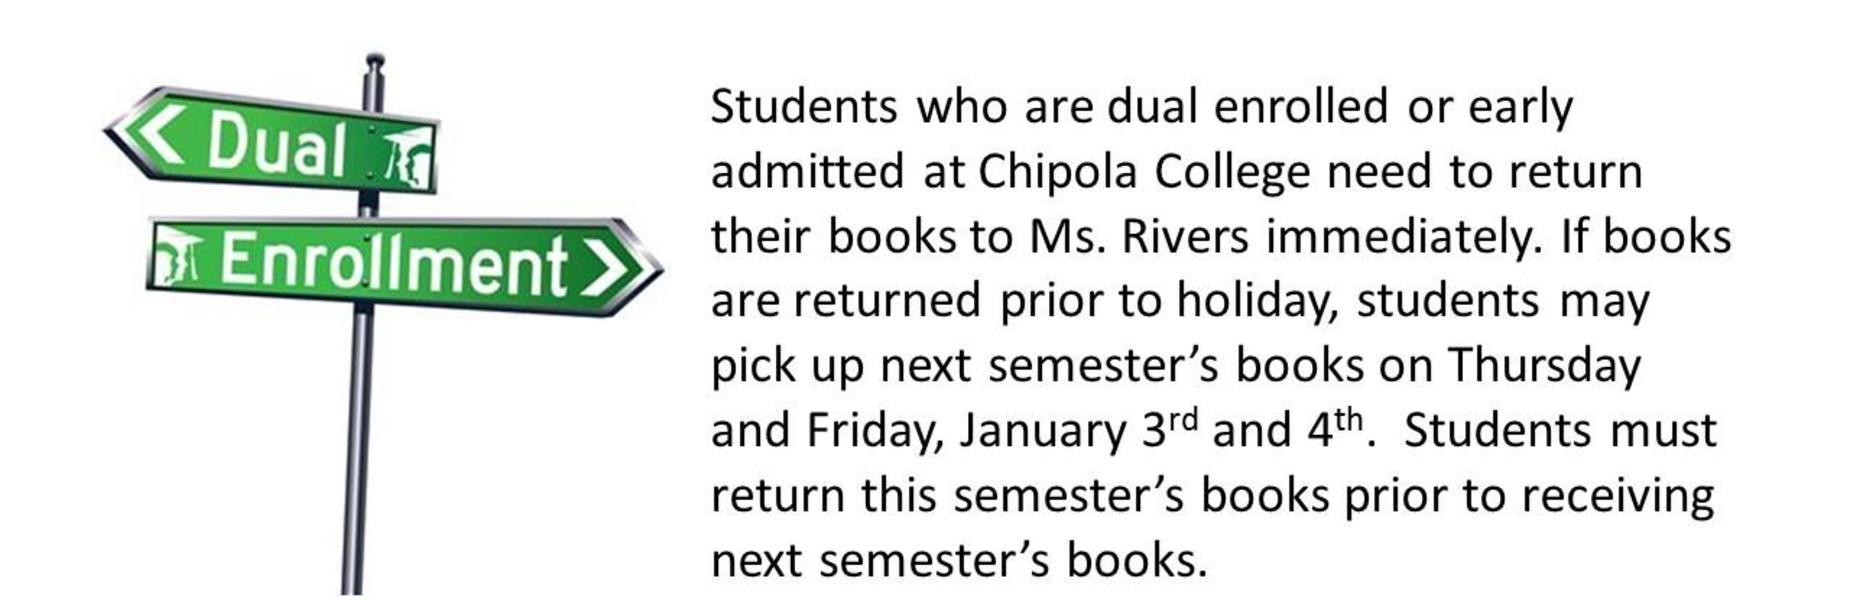 Picture has a road sign that reads Dual Enrollment; The text of the picture states: Students who are dual enrolled or early admitted at Chipola College need to return their books to Ms. Rivers immediately. If books are returned prior to holiday, students may pick up next semester's books on Thursday and Friday, January 3rd and 4th.  Students must return semester's books prior to receiving next semester's books.